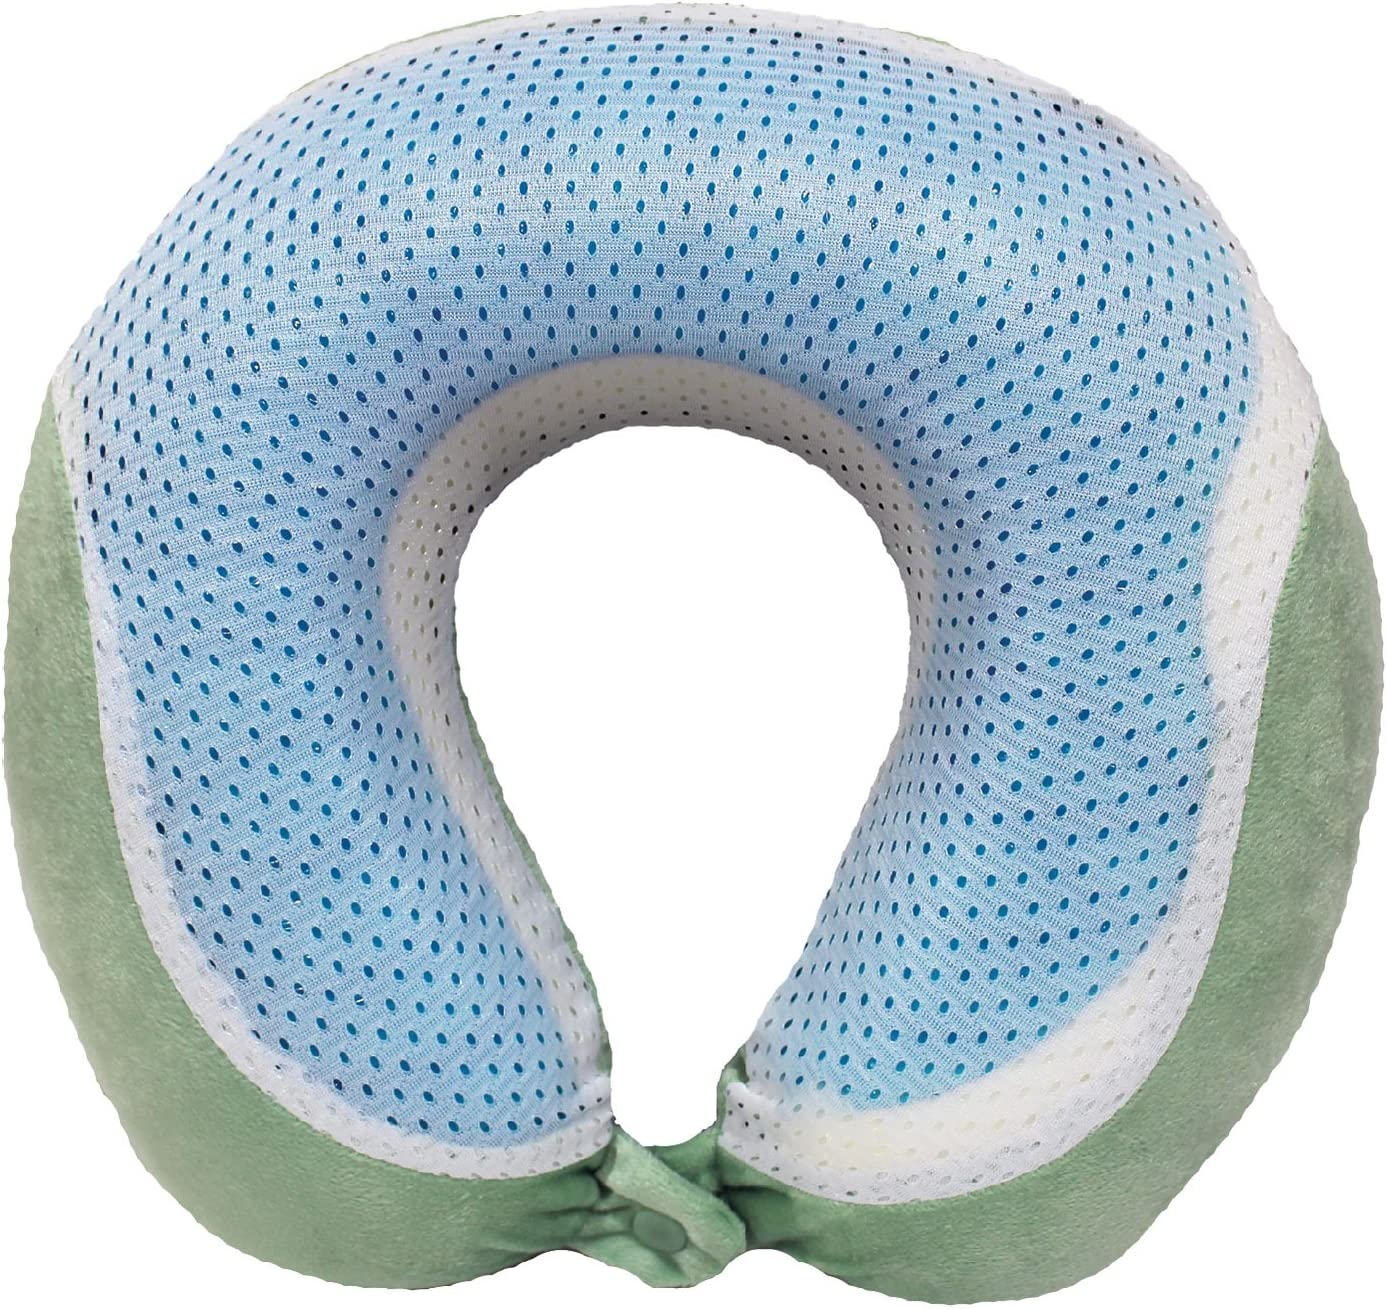 Travel Gel Memory Foam Neck Pillow with